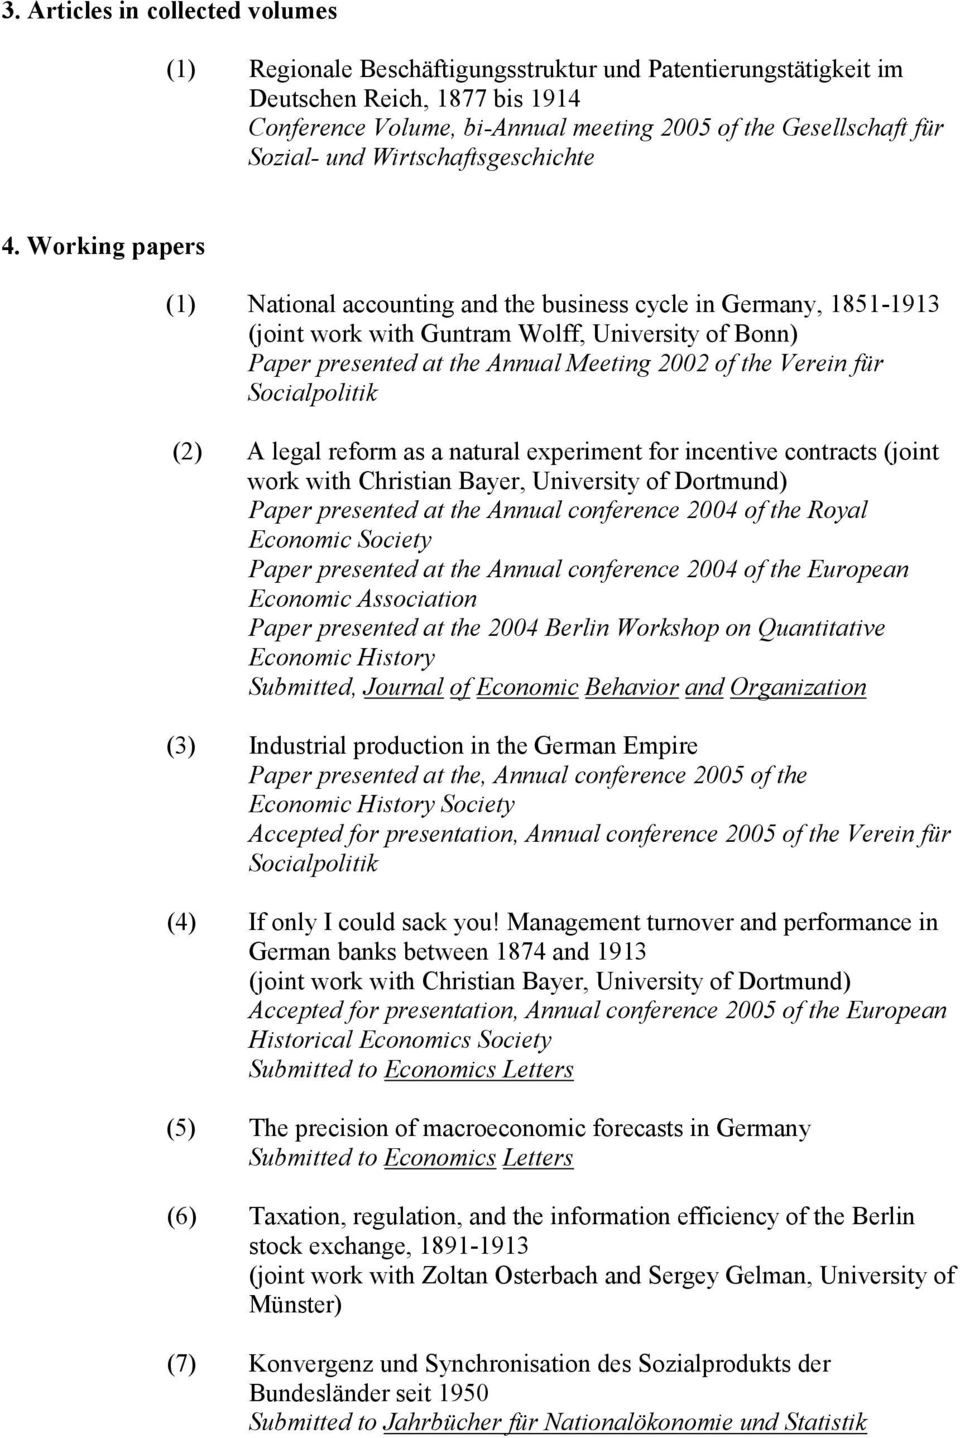 Working papers (1) National accounting and the business cycle in Germany, 1851-1913 (joint work with Guntram Wolff, University of Bonn) Paper presented at the Annual Meeting 2002 of the Verein für